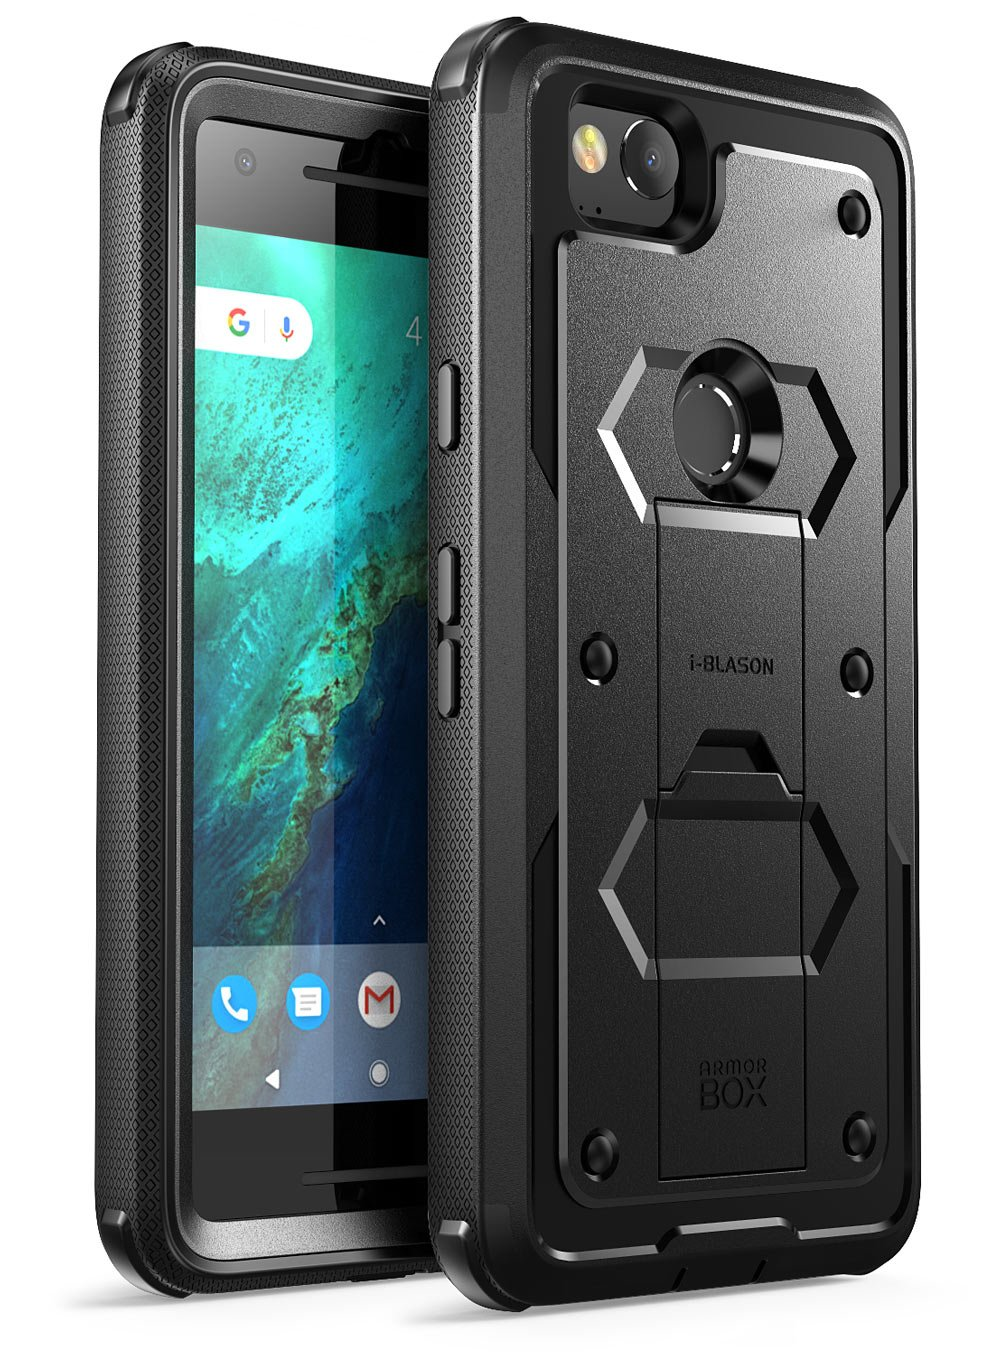 Google Pixel 2 Case, [Armorbox] i-Blason built in [Screen Protector] [Full body] [Heavy Duty Protection ] [Kickstand] Shock Reduction/Bumper Case for Google Pixel 2 2017 Release (Black)